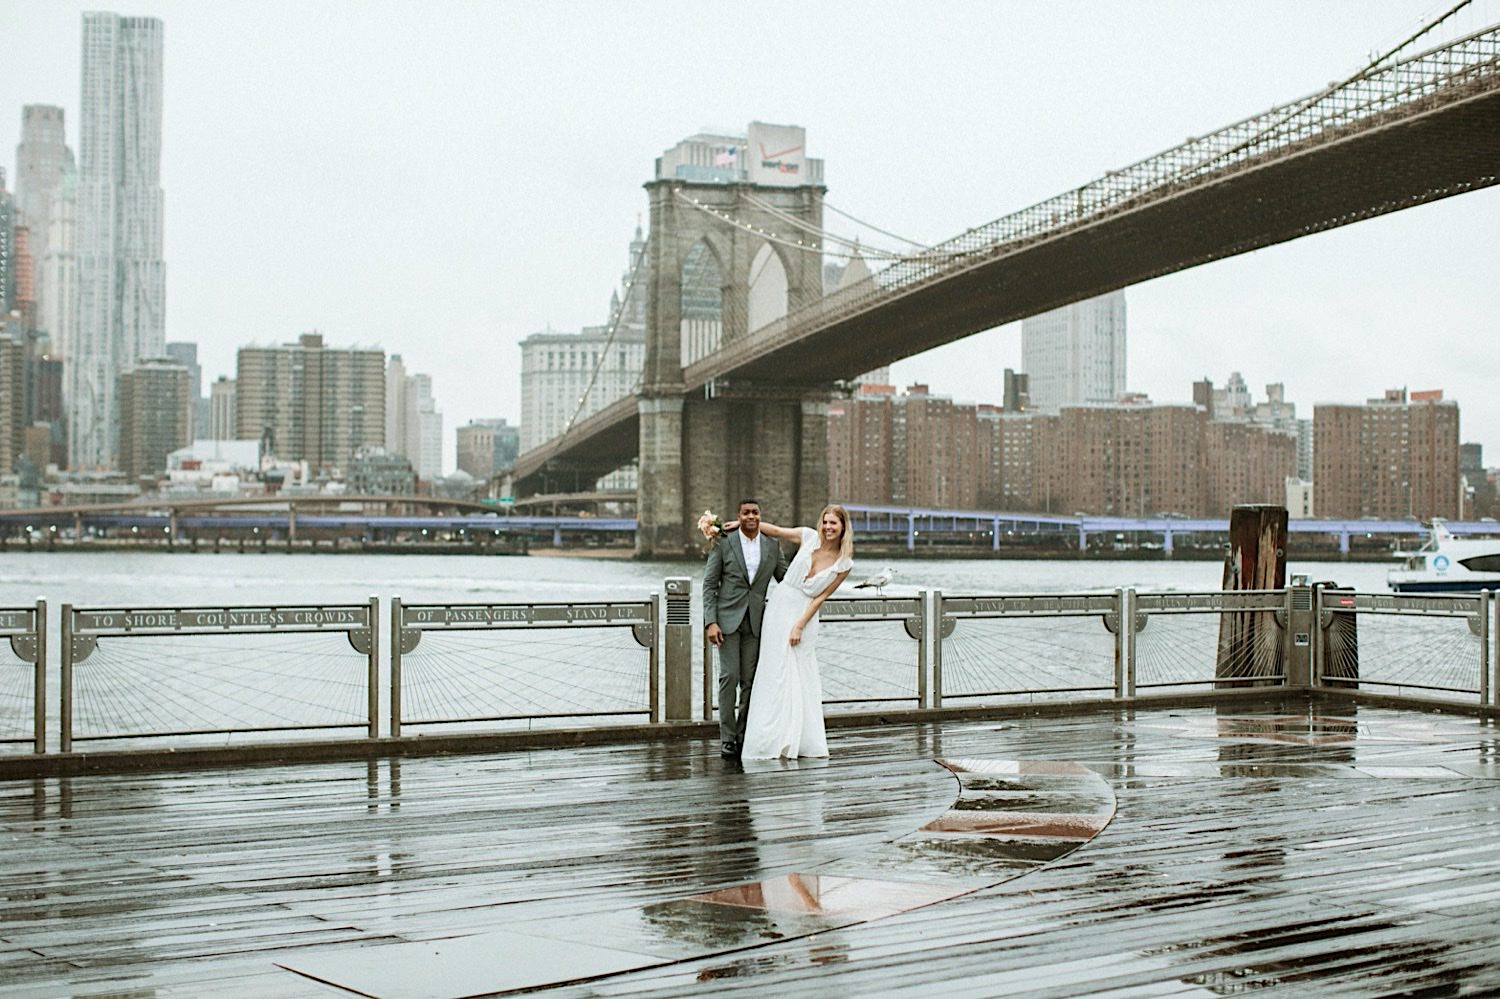 DUMBO Wedding Photography - Bride and Groom pose on the pier on a rainy day with the Brooklyn Bridge in the background